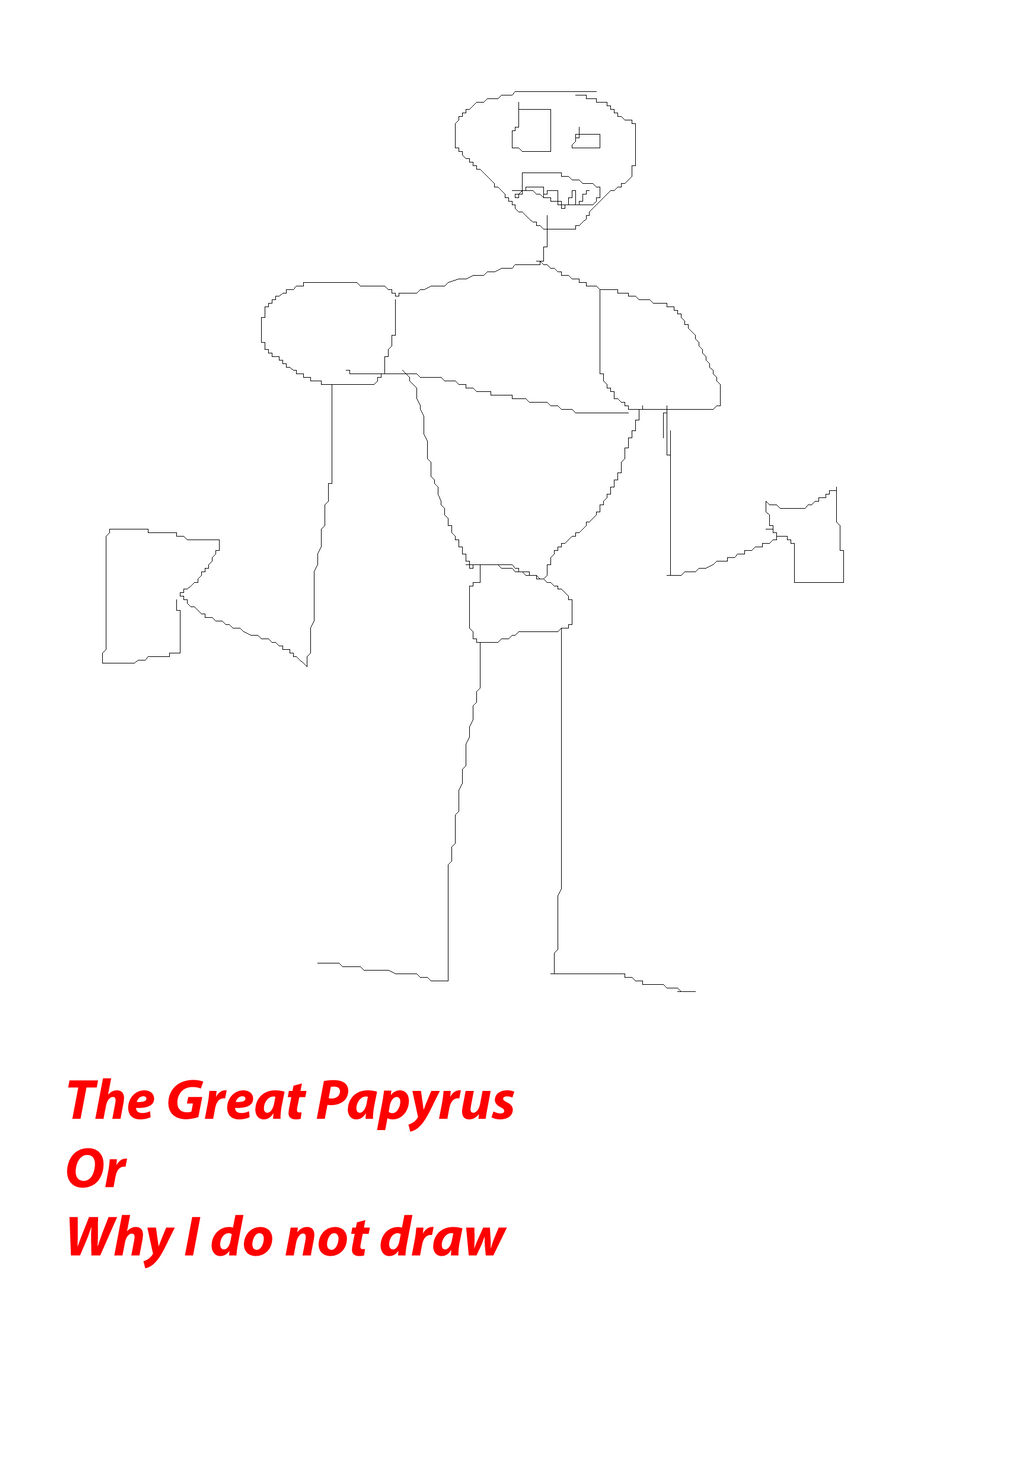 The Great Papyrus or Why I do not draw by Jet556 on DeviantArt